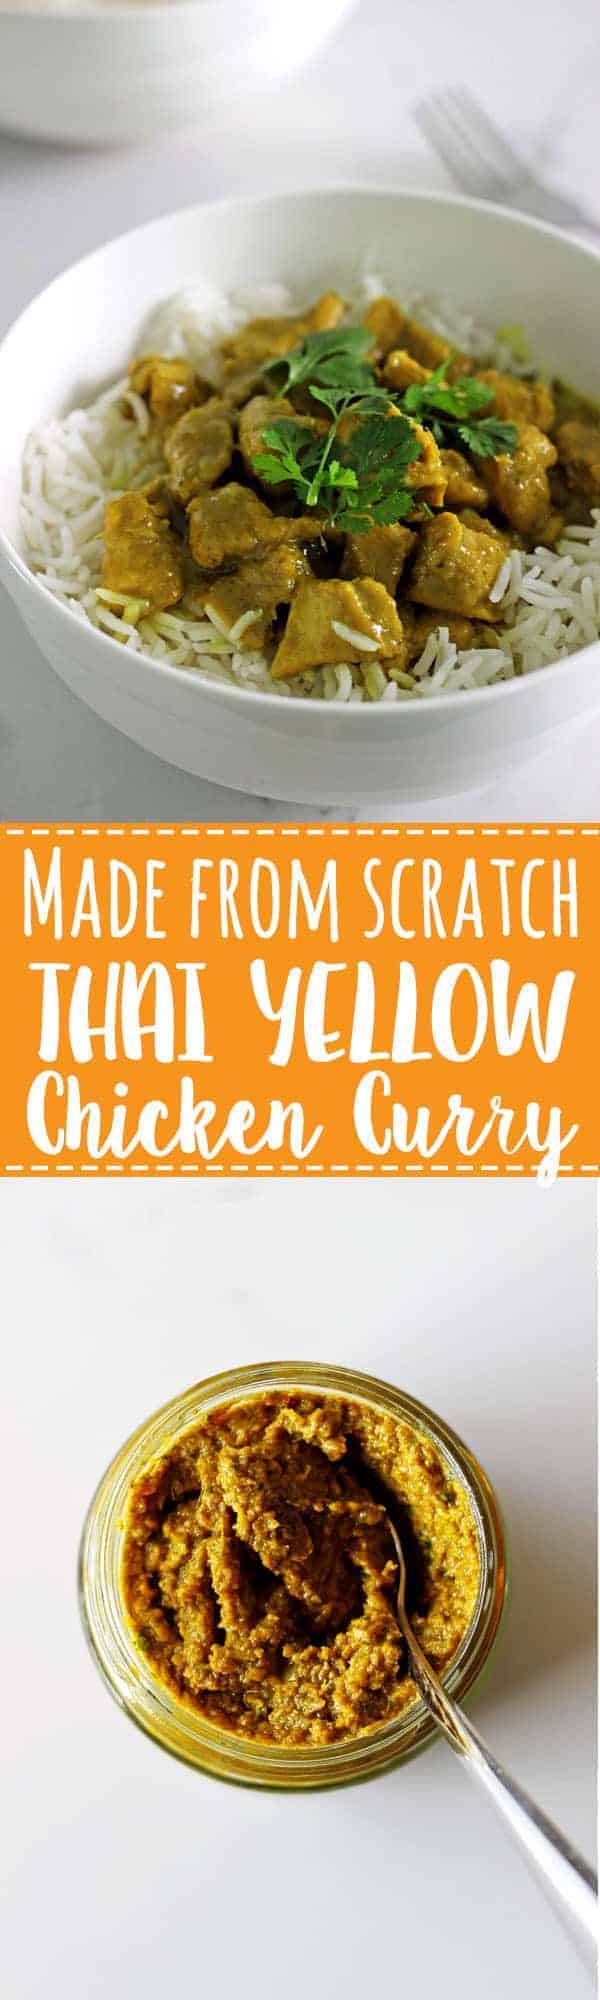 Completely from scratch (including the homemade curry paste) and on the table in under an hour Thai yellow chicken curry! | thekiwicountrygirl.com